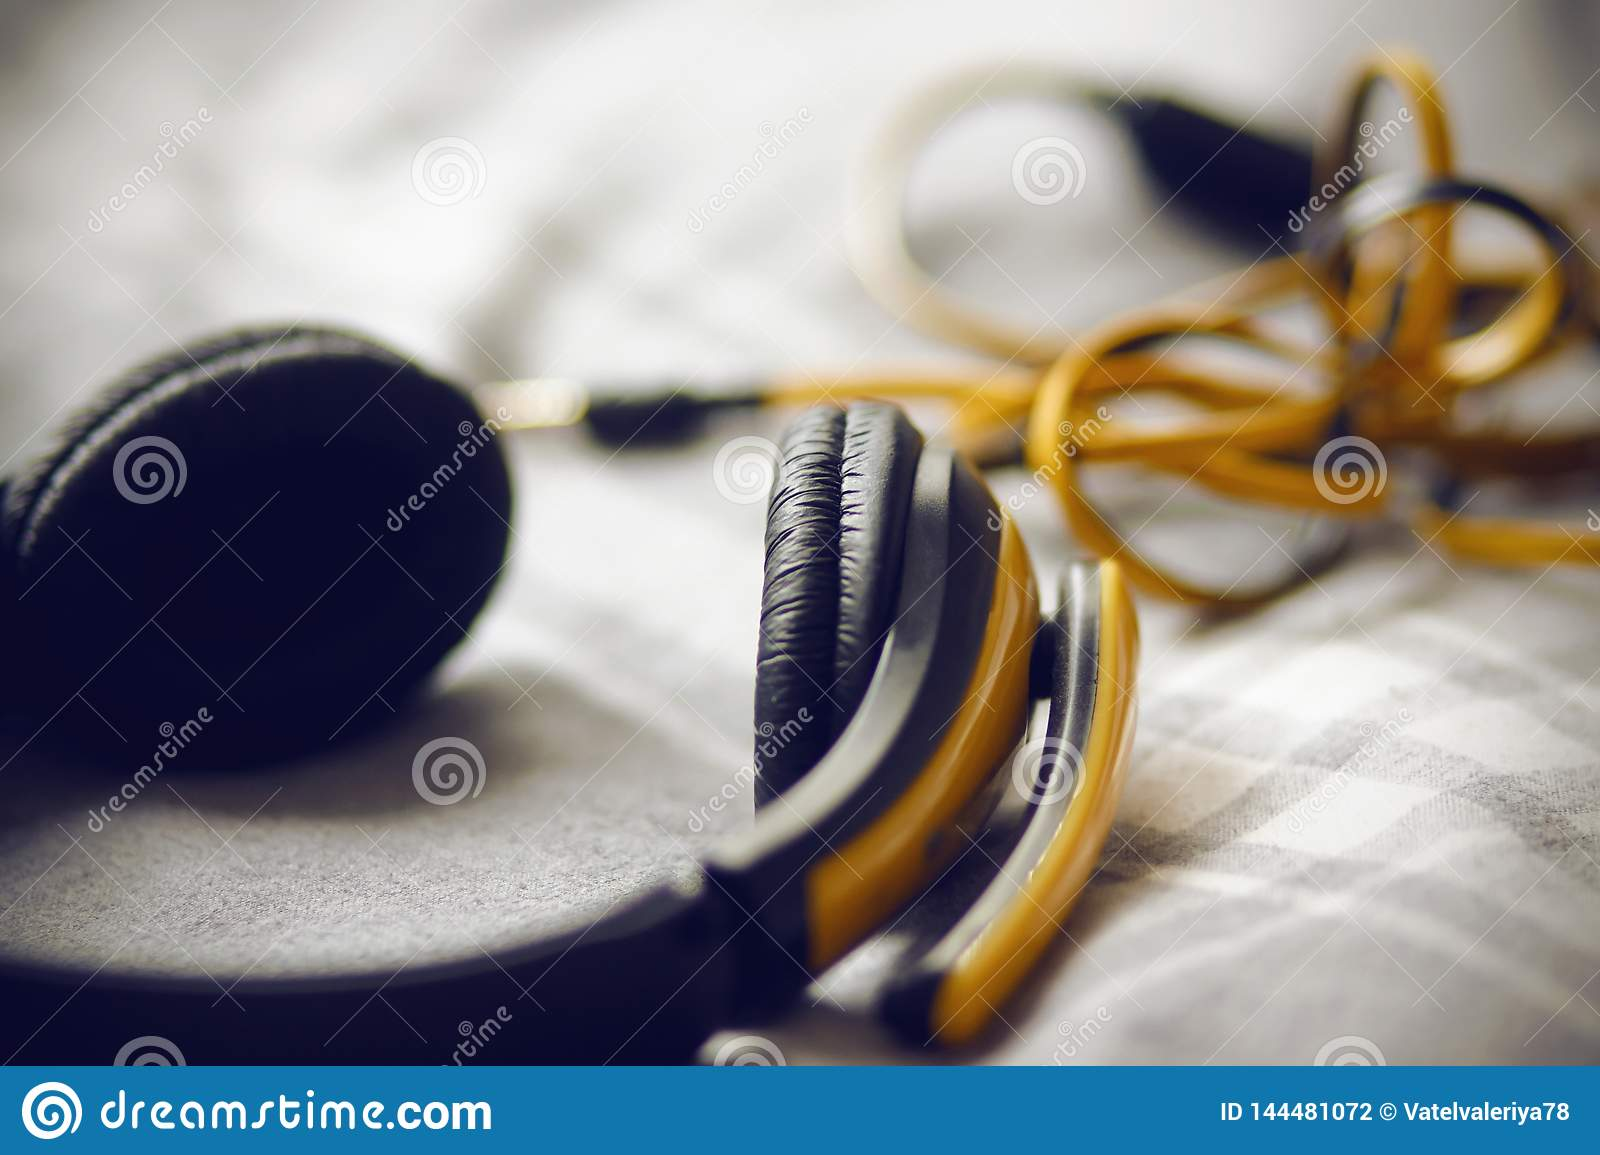 Large yellow headphones lie on a gray plaid